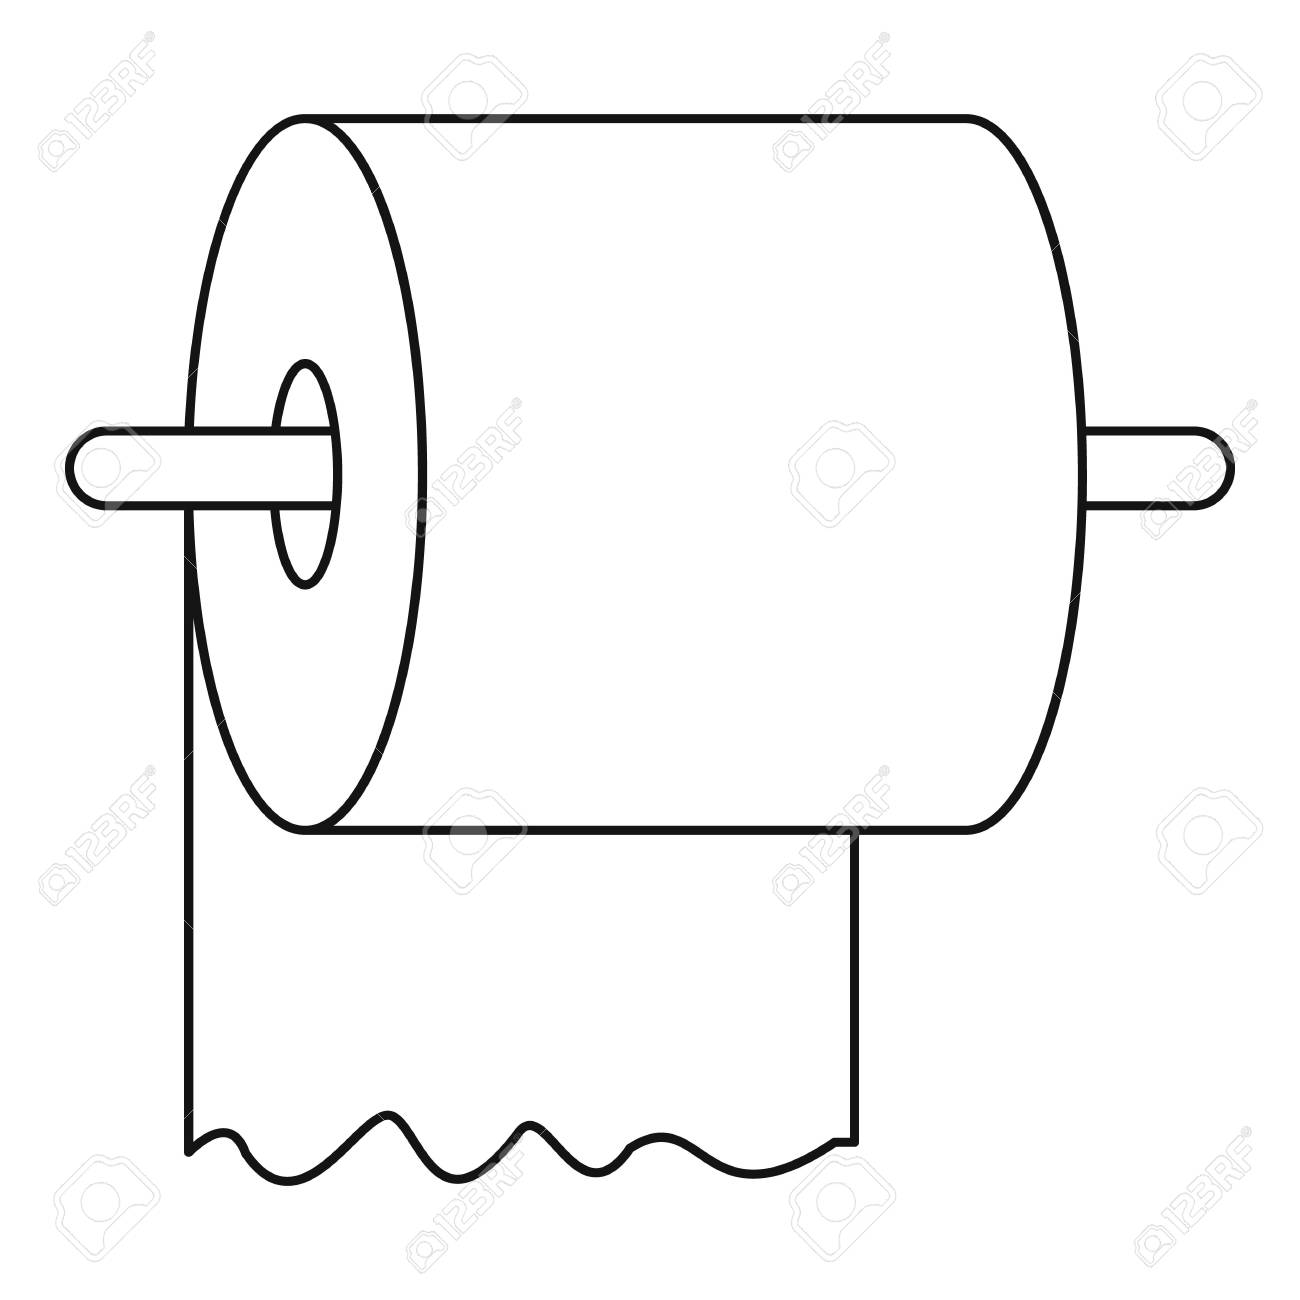 toilet paper on holder icon outline style royalty free cliparts rh 123rf com no toilet paper clipart toilet paper clipart